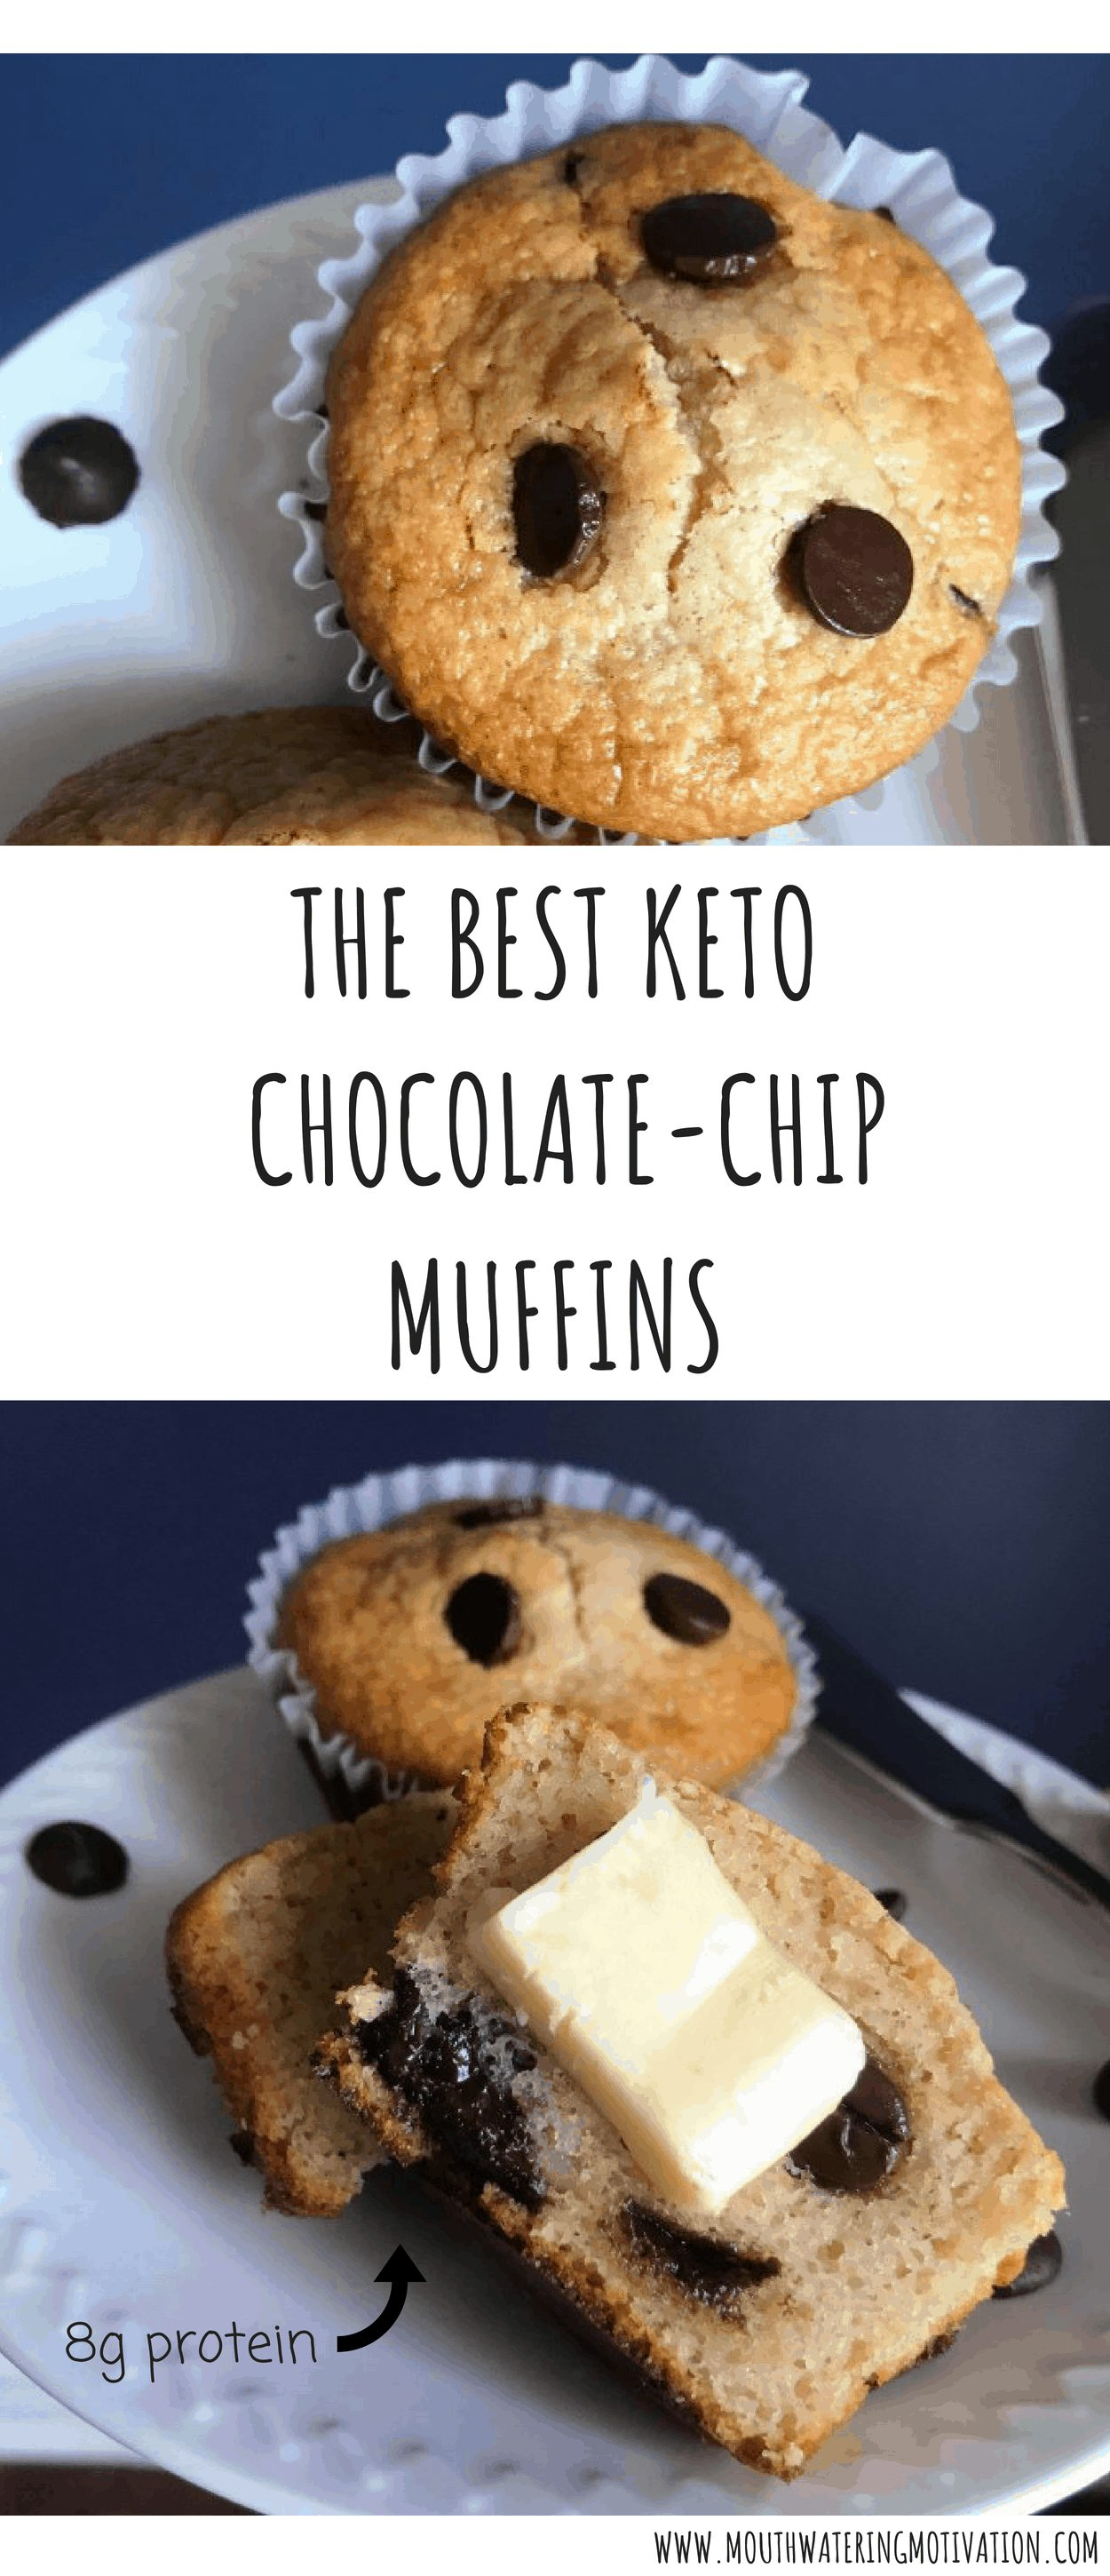 THE BEST KETO CHOCOLATE-CHIP MUFFINS (3)